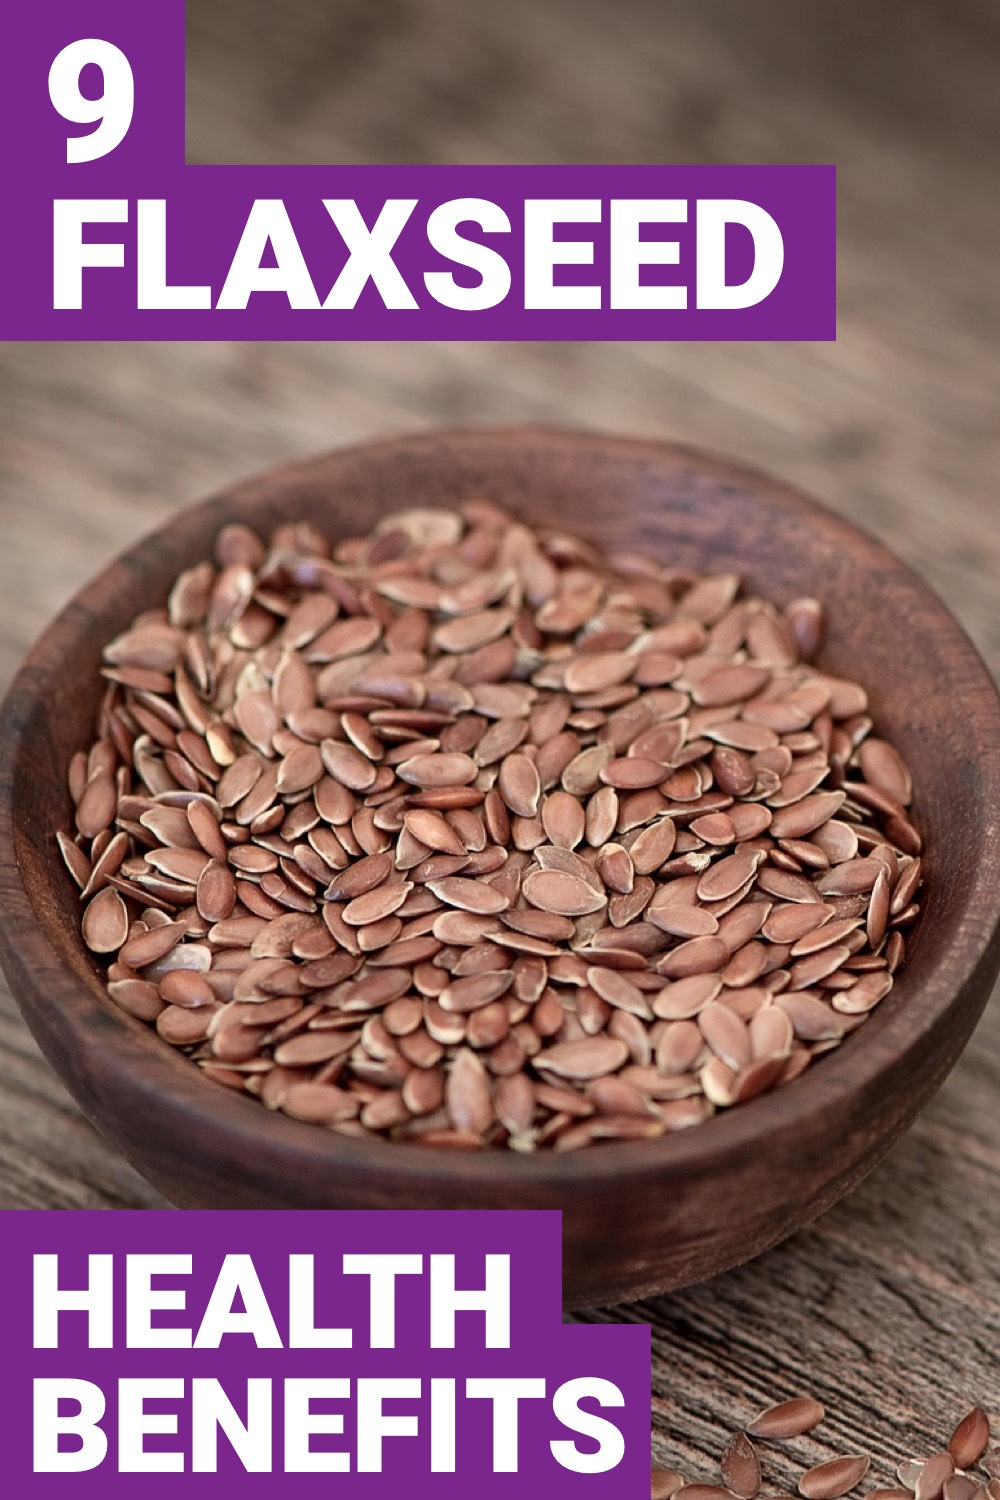 Health benefits of flaxseed go beyond what you may have thought. Here are 9 of those benefits.